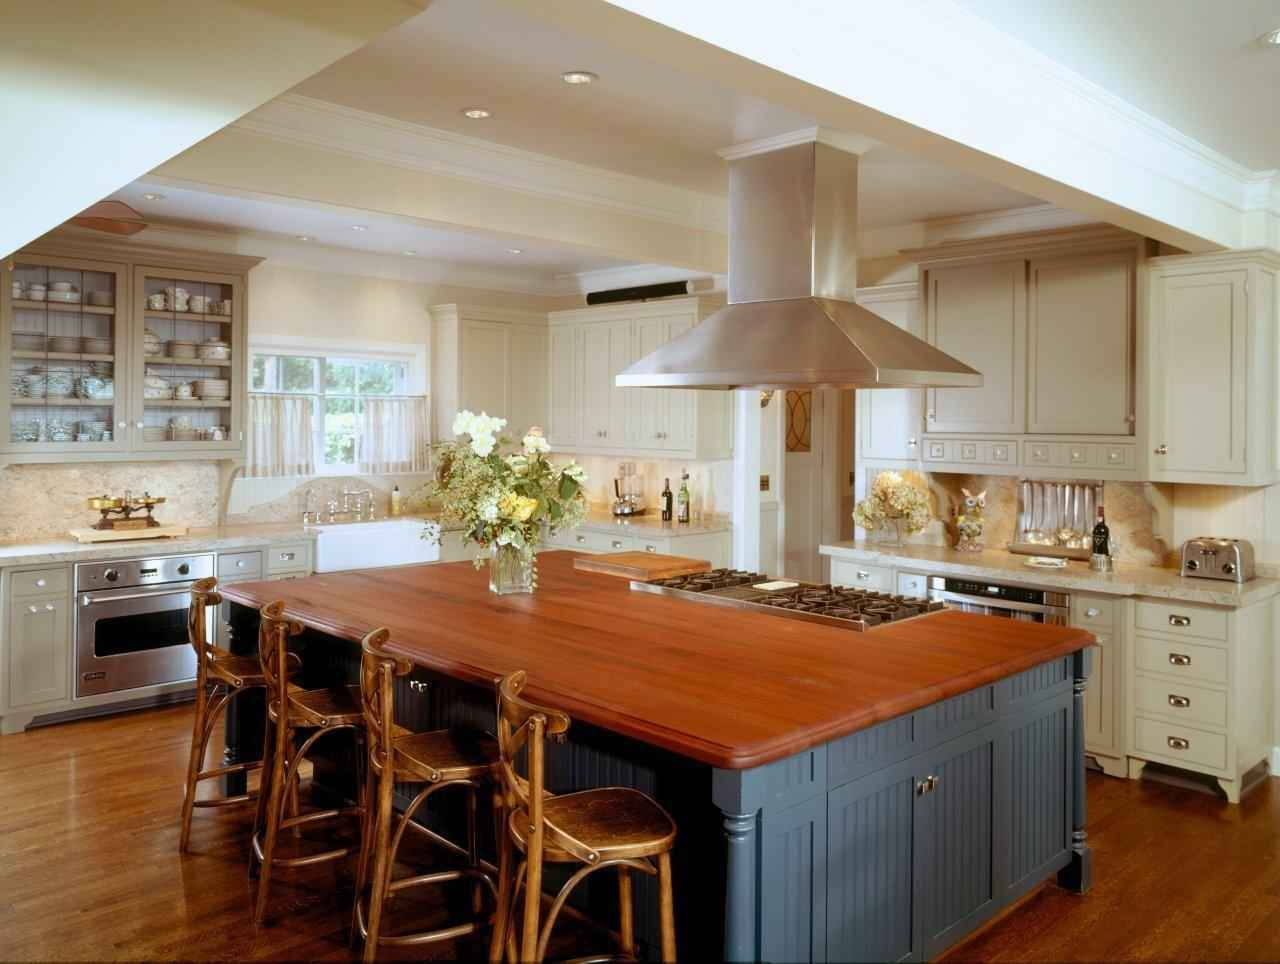 Cheap Decoration Countertop Ideas for Kitchen